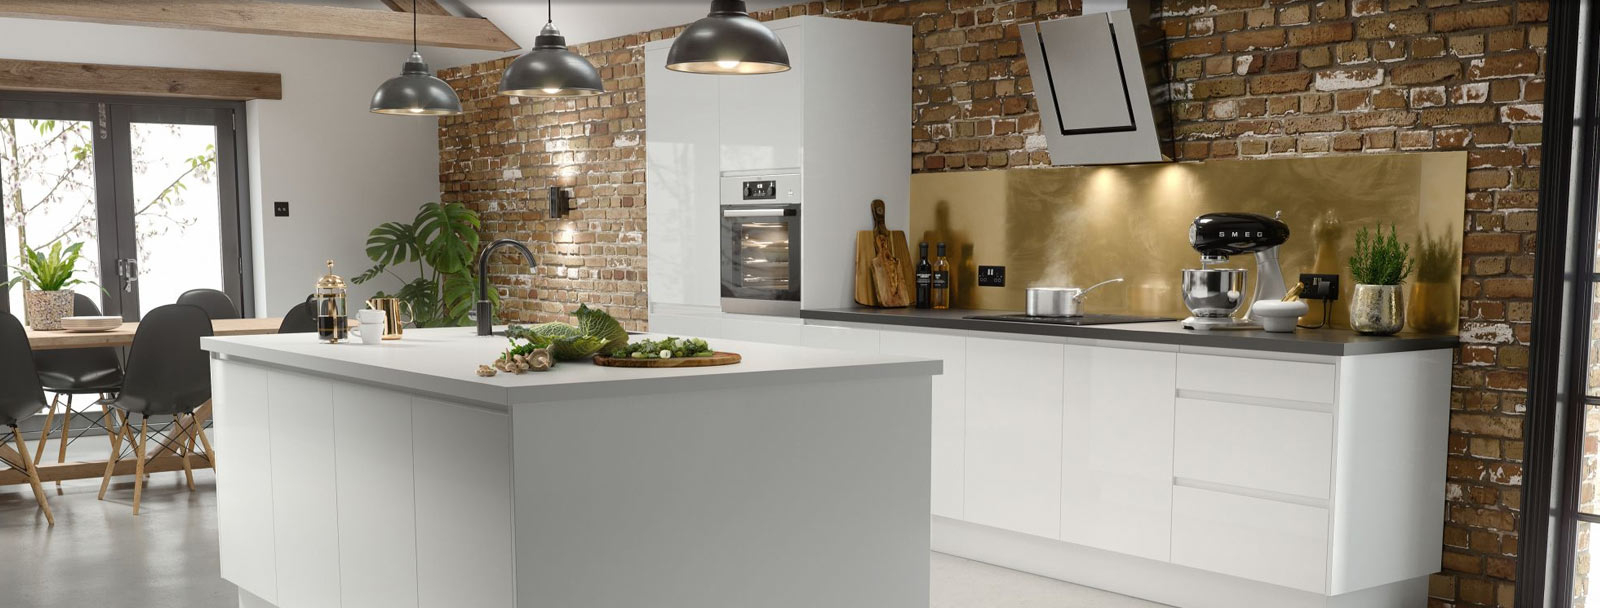 Kitchens Vaughan Kitchen Design Renovation with regard to proportions 1600 X 608